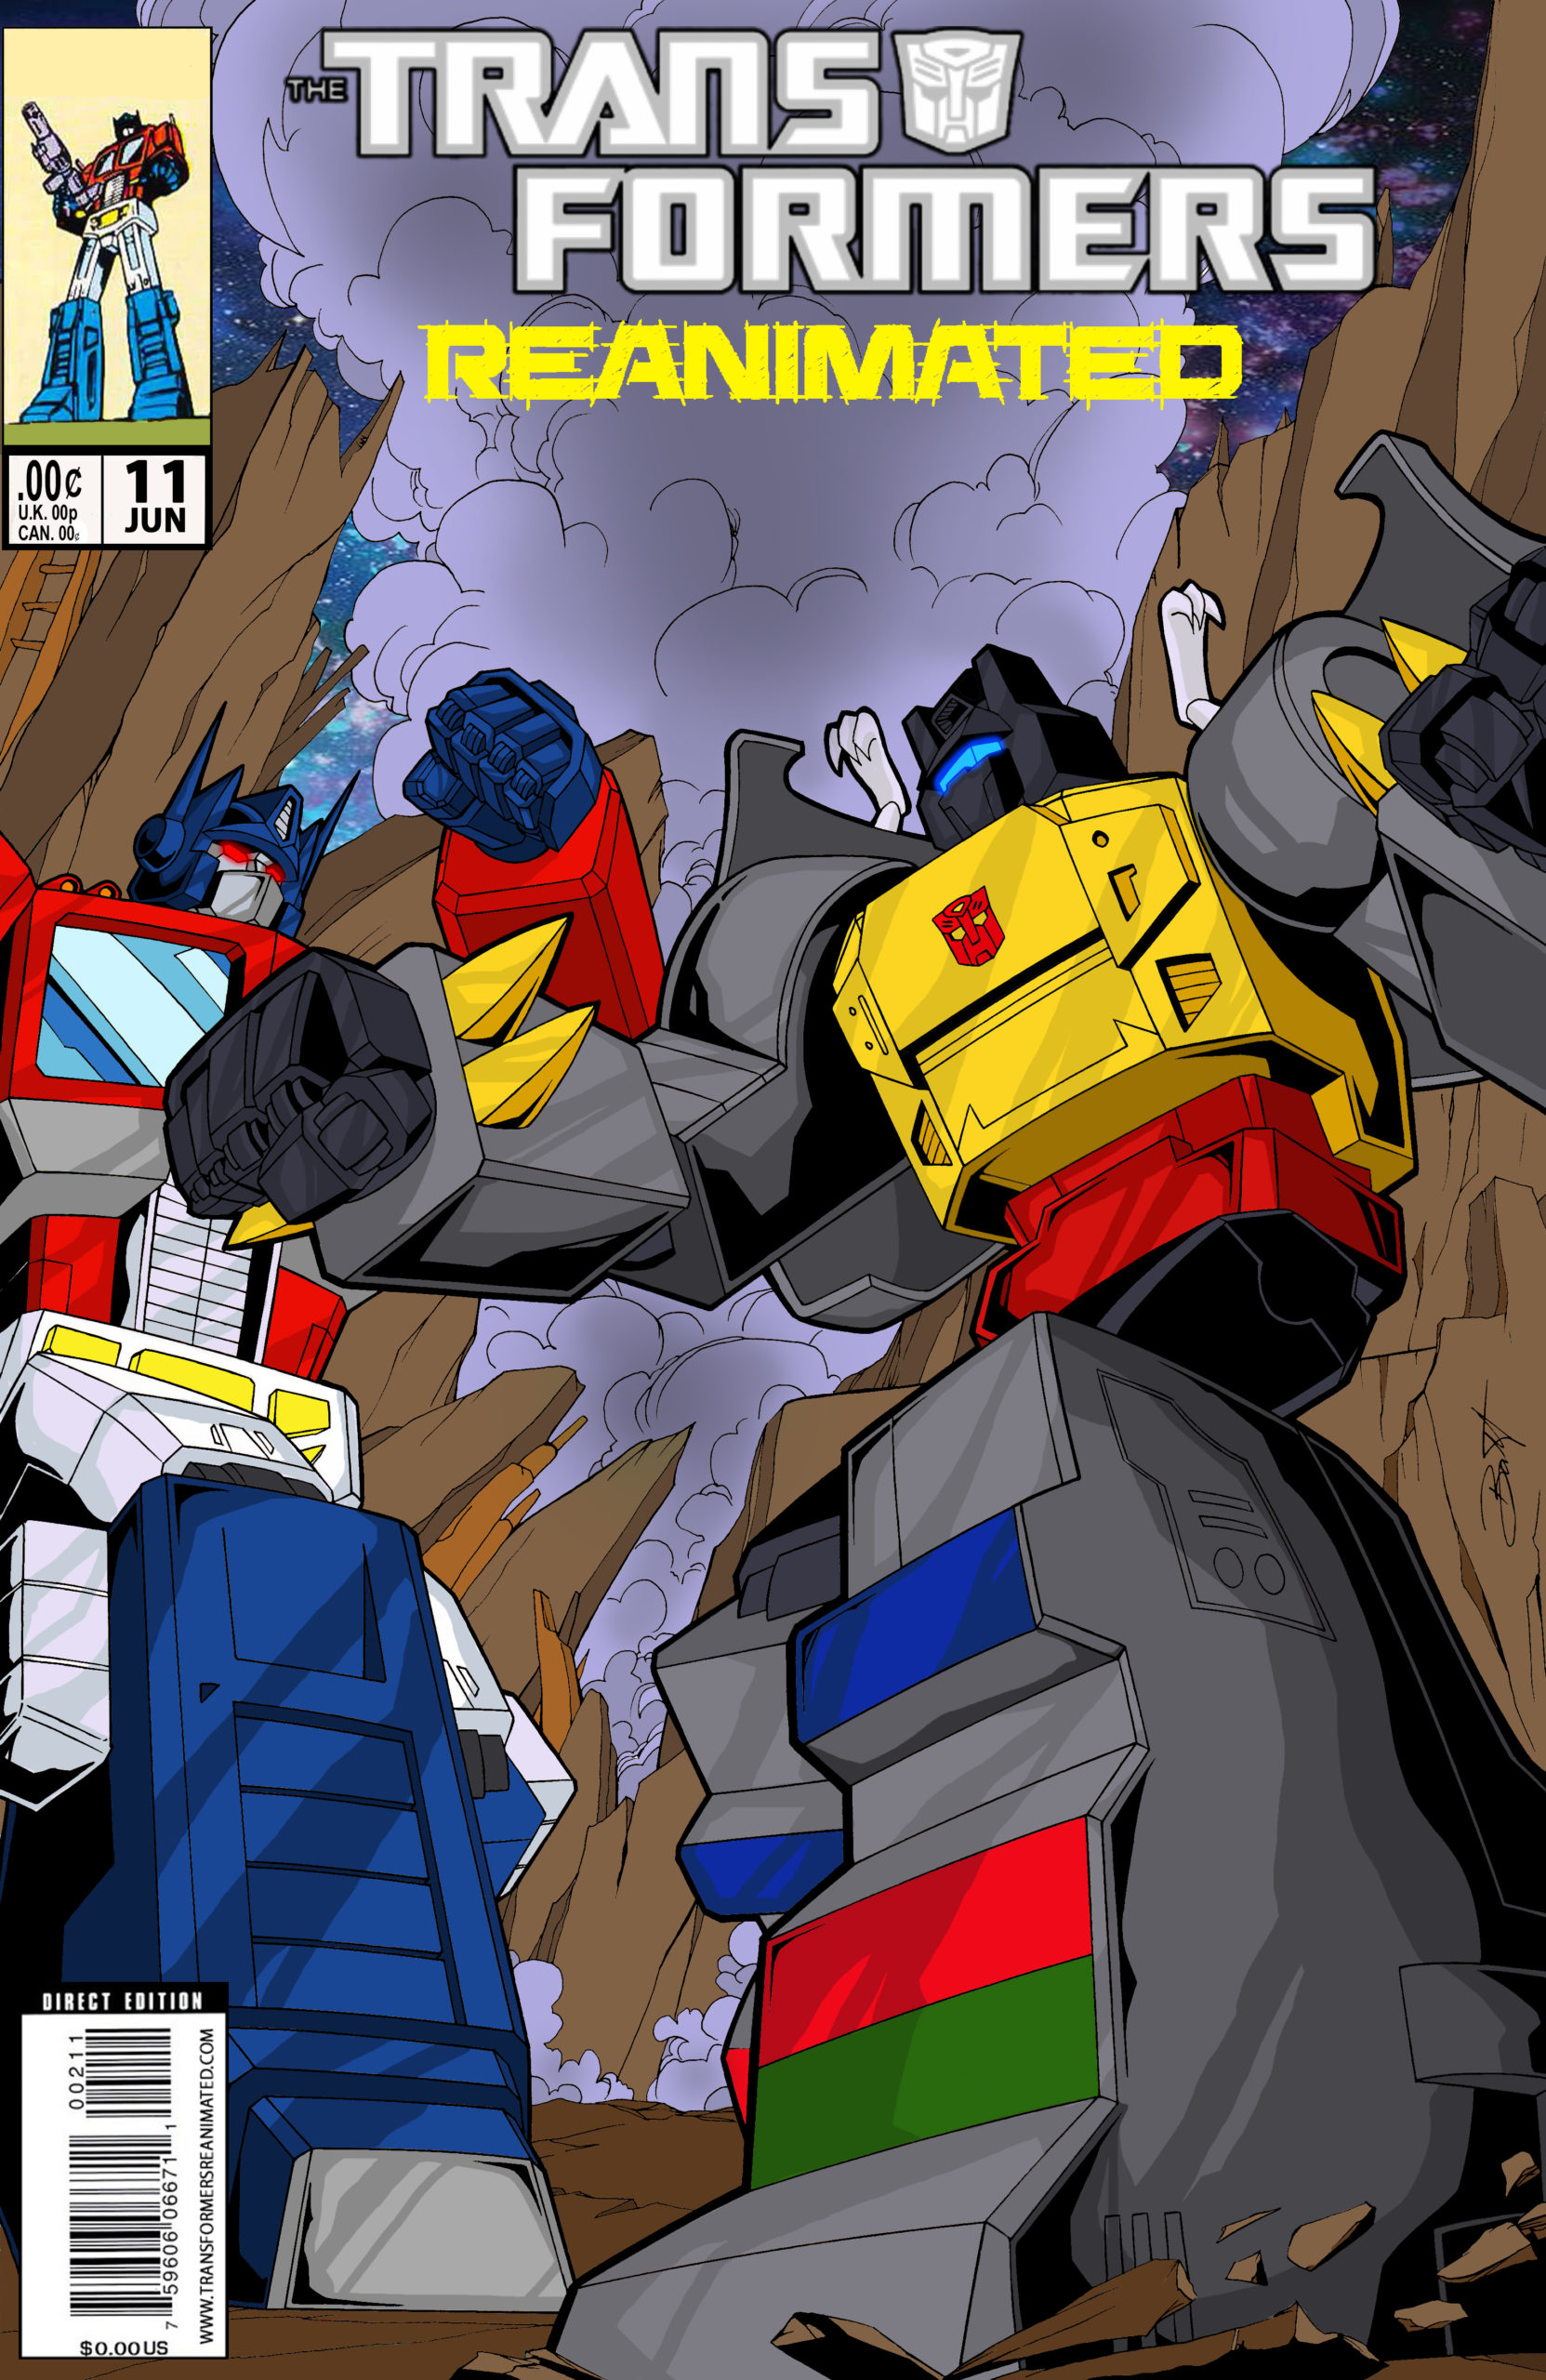 Transformers: REANIMATED Issue 11: For The Love of H.A.T.E., Part 2